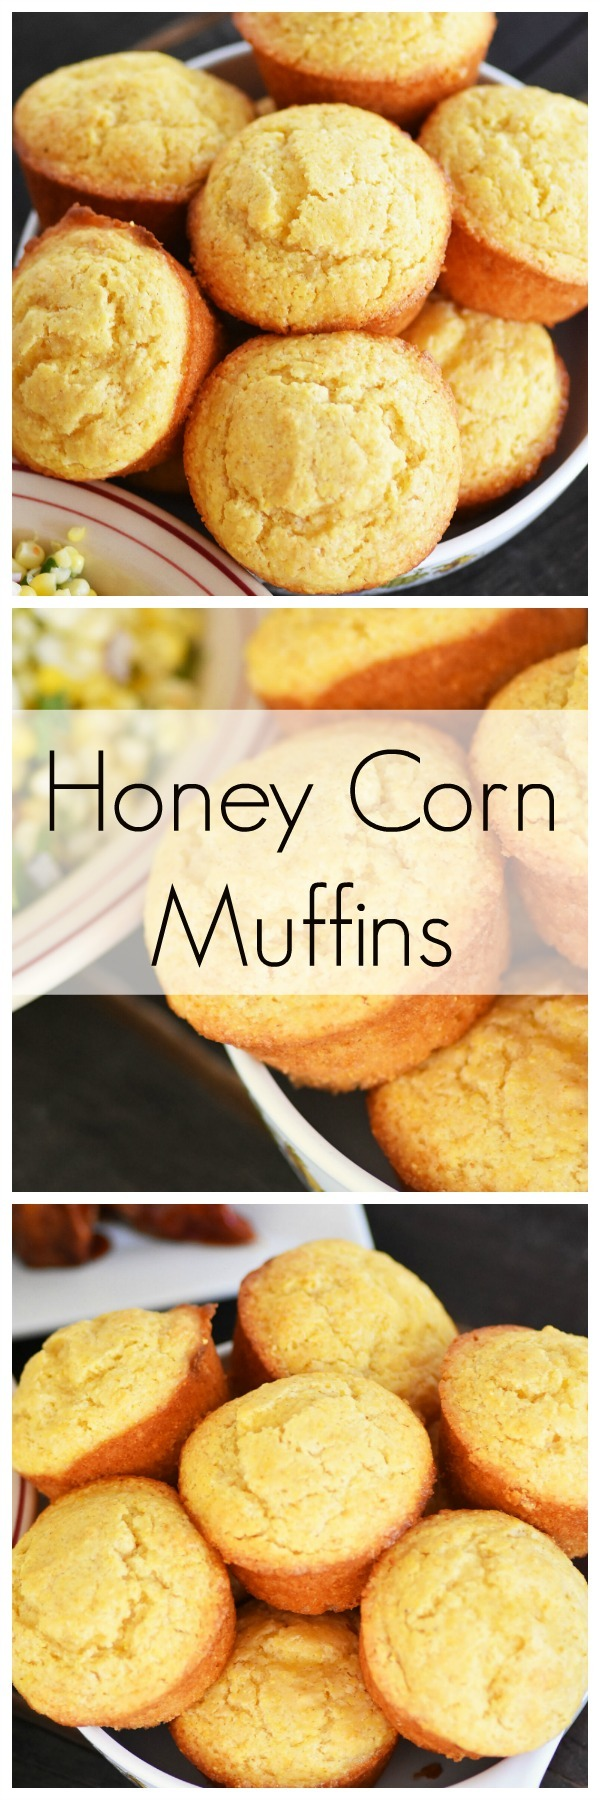 Honey-Corn-Muffins-Recipes